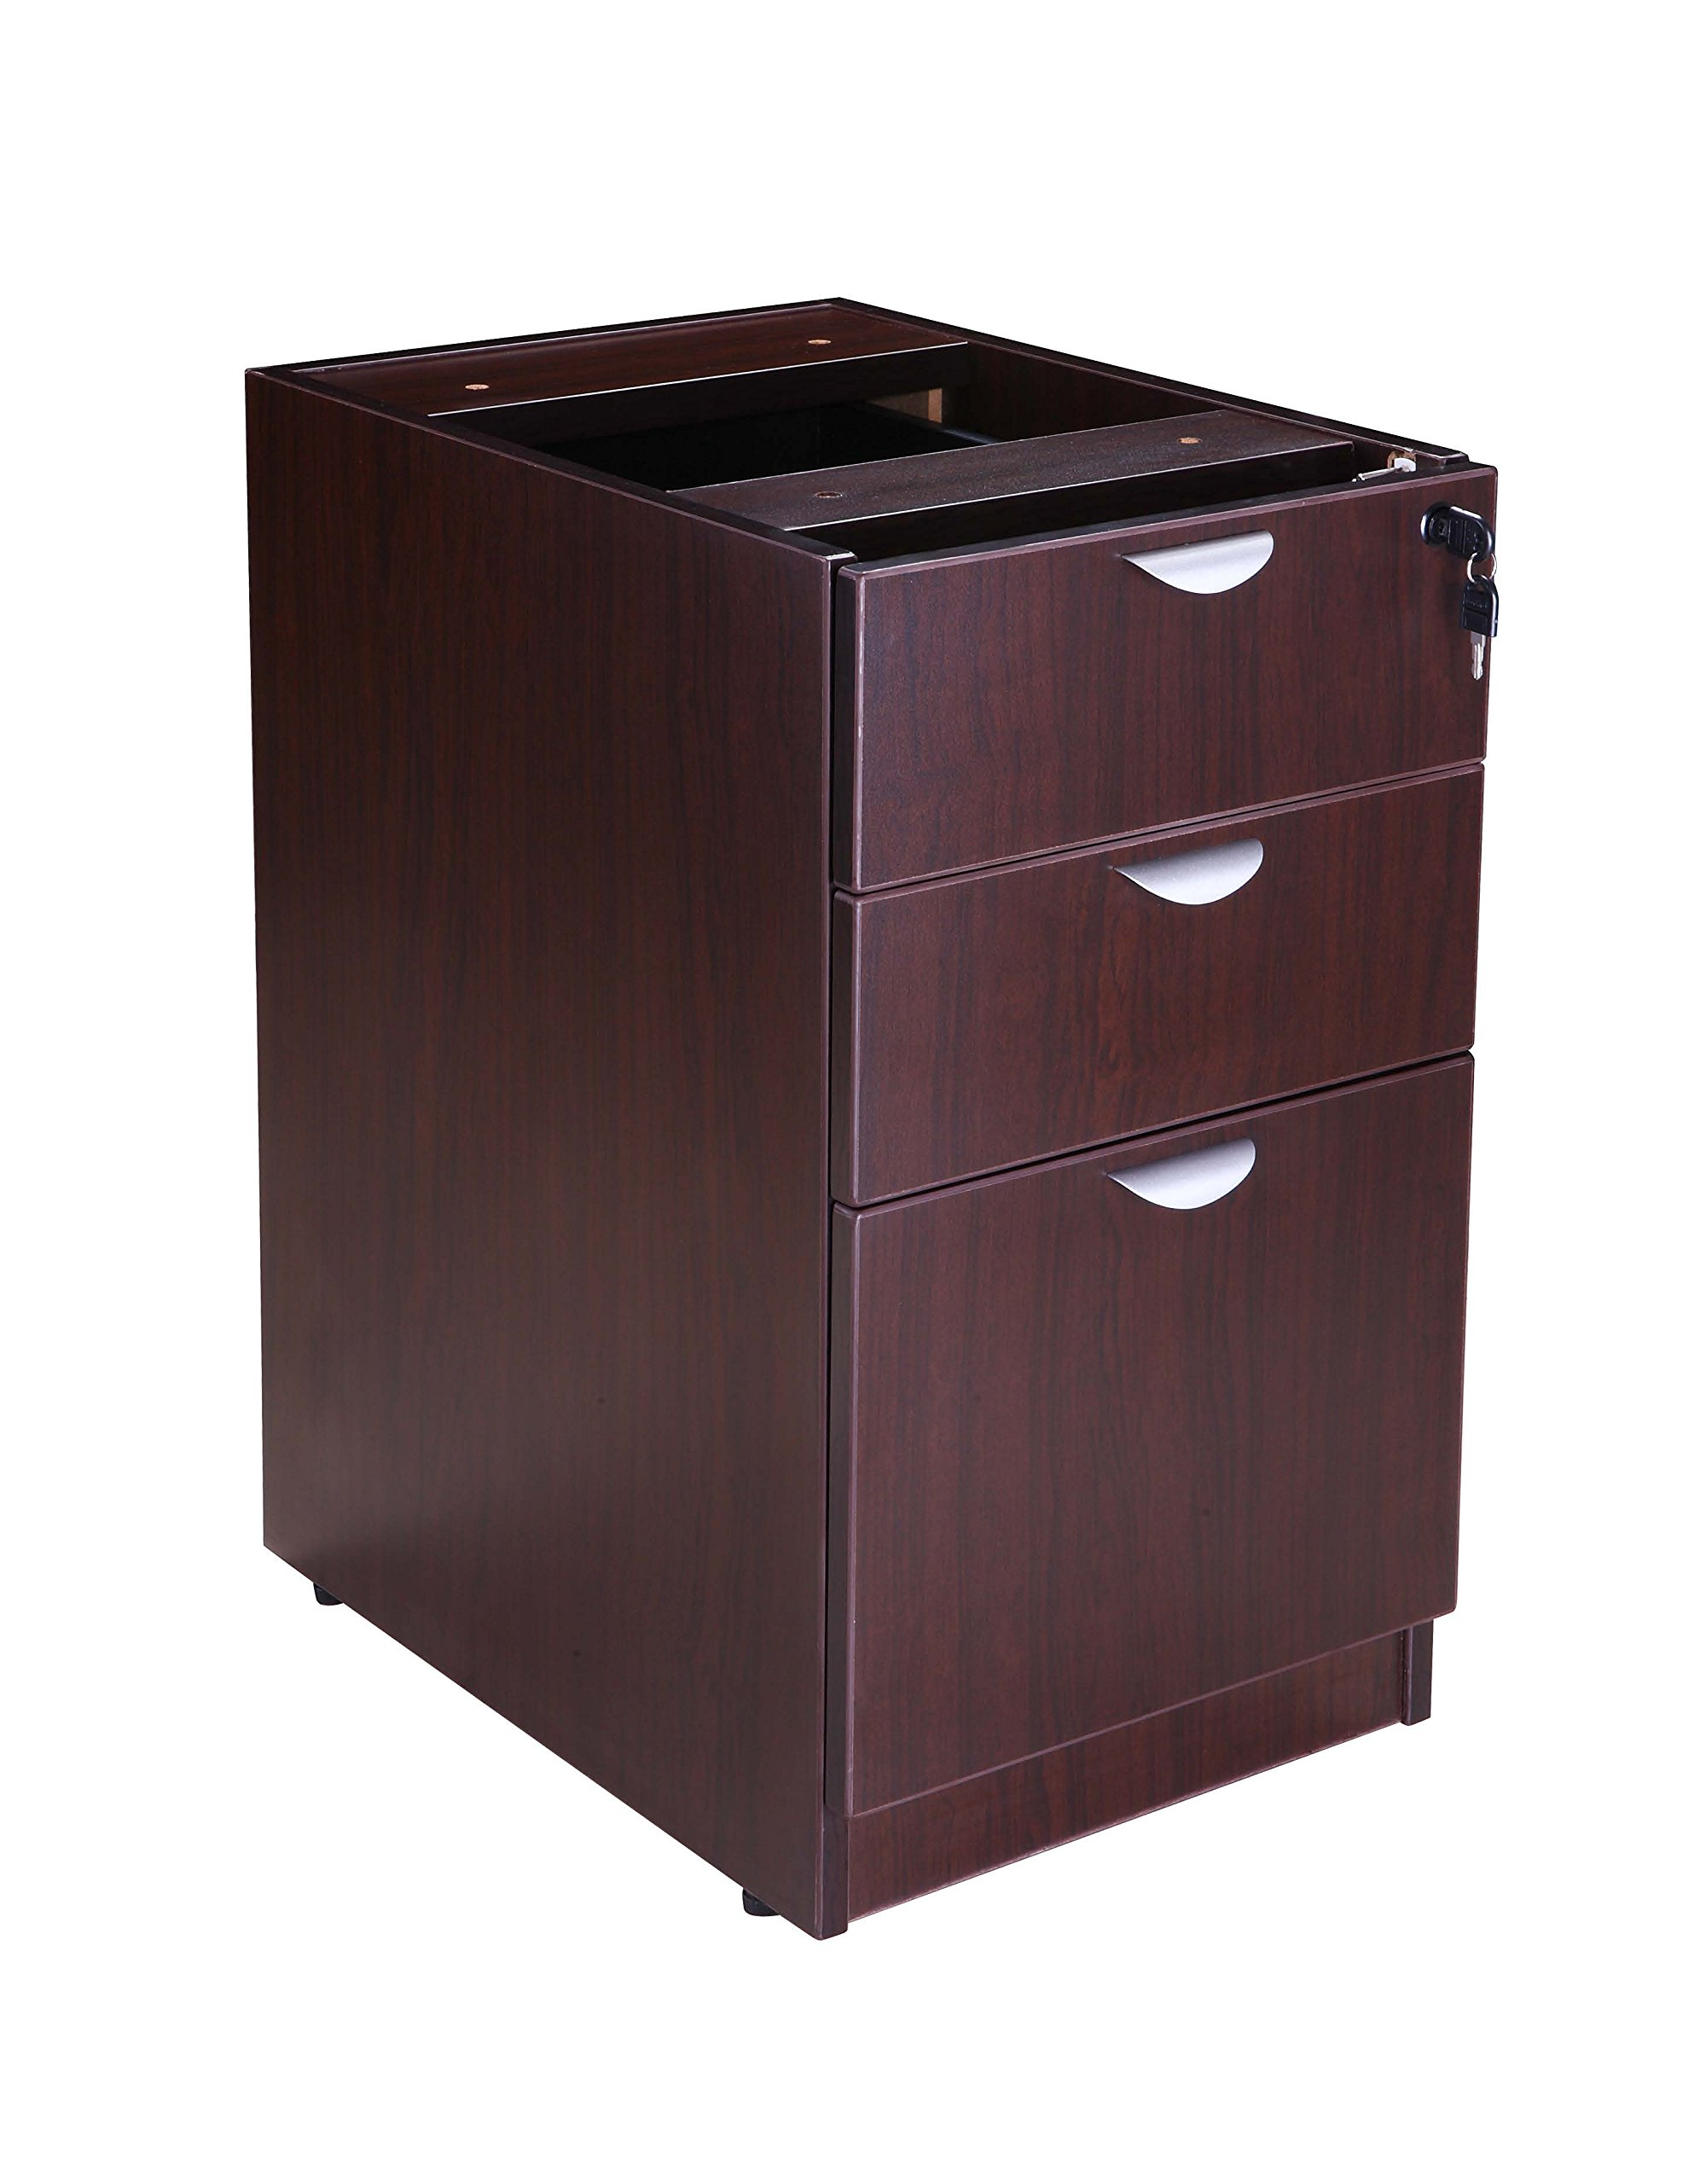 Boss Office Products Holland 71'' Executive U-Shape Desk with File Storage Pedestal and Hutch, Mocha by Boss Office Products (Image #6)